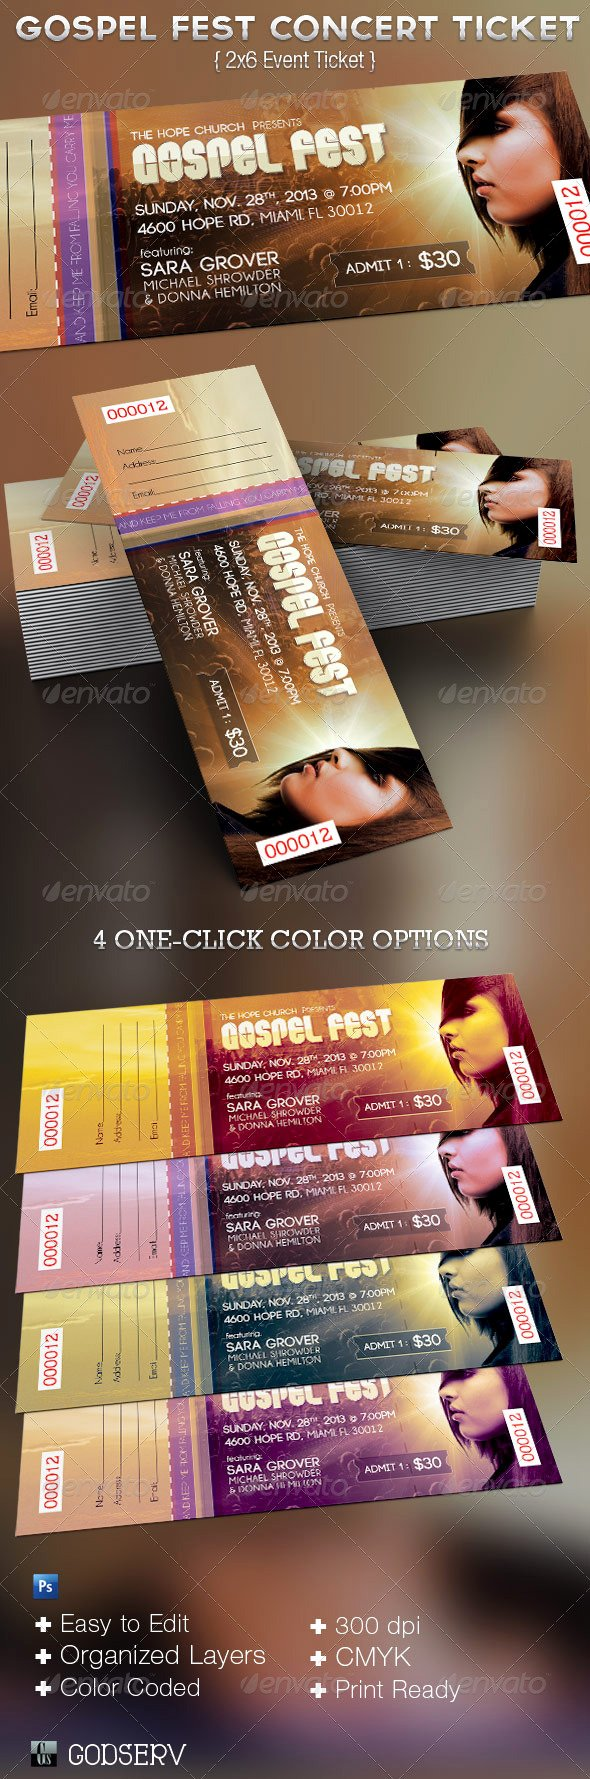 Concert Ticket Template Free New Gospel Fest Concert Ticket Template On Behance